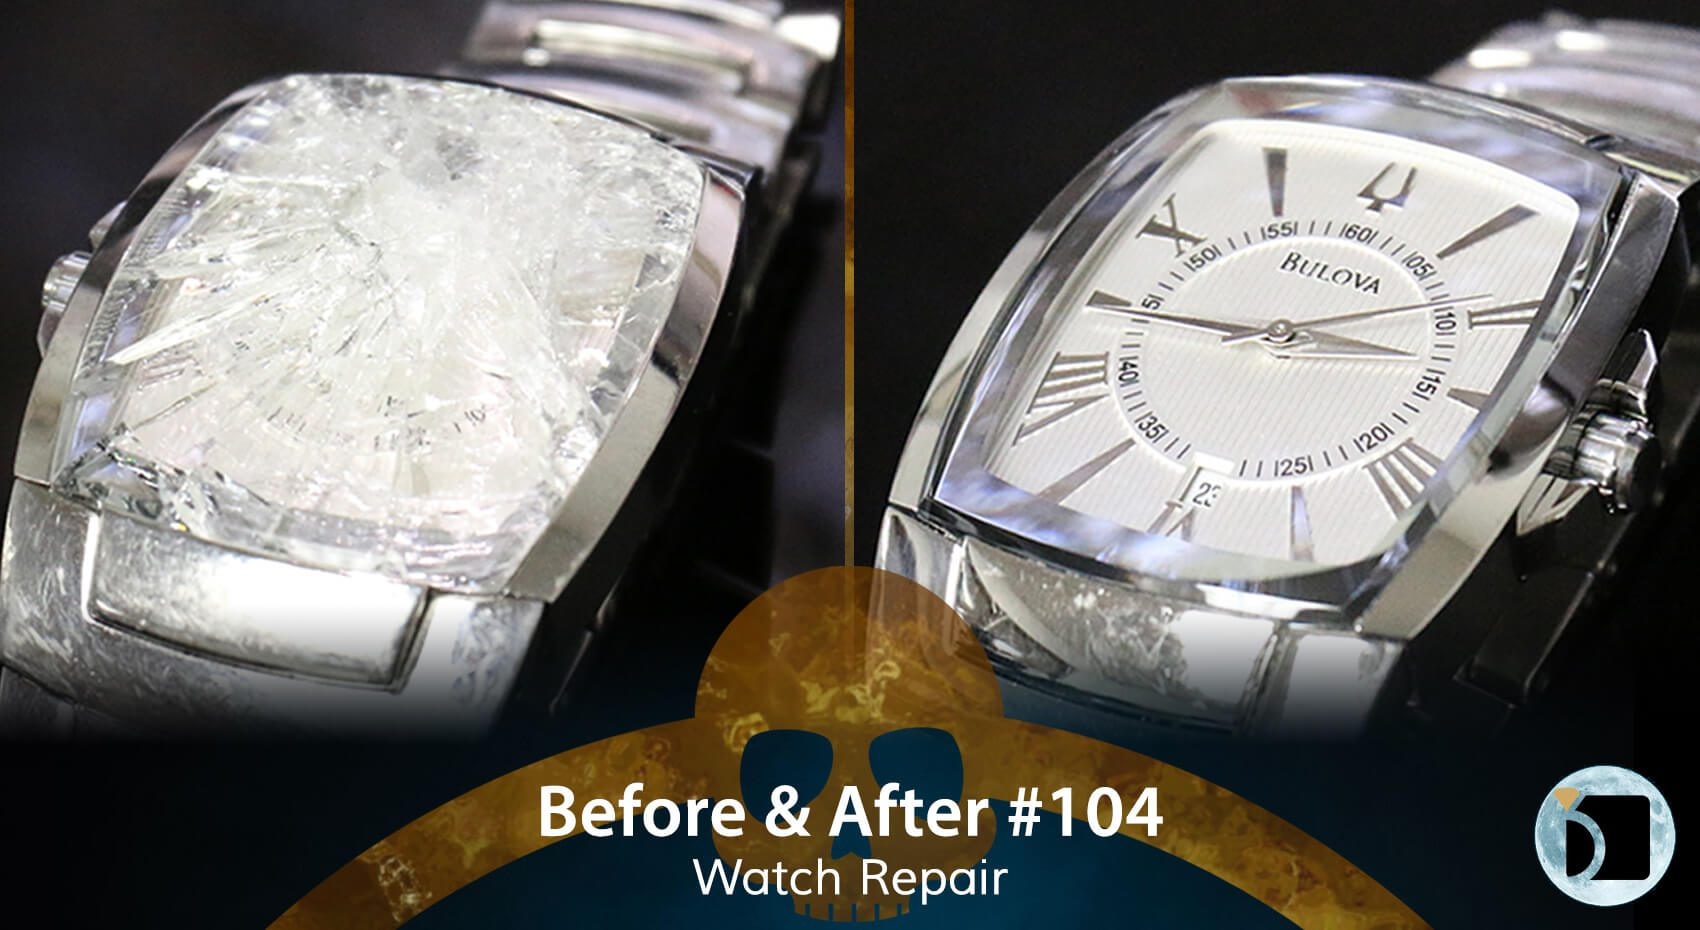 Image Showcasing a Bulova Watch Crystal Repair Model Number 11428230 Case Number C876952. Before After 104